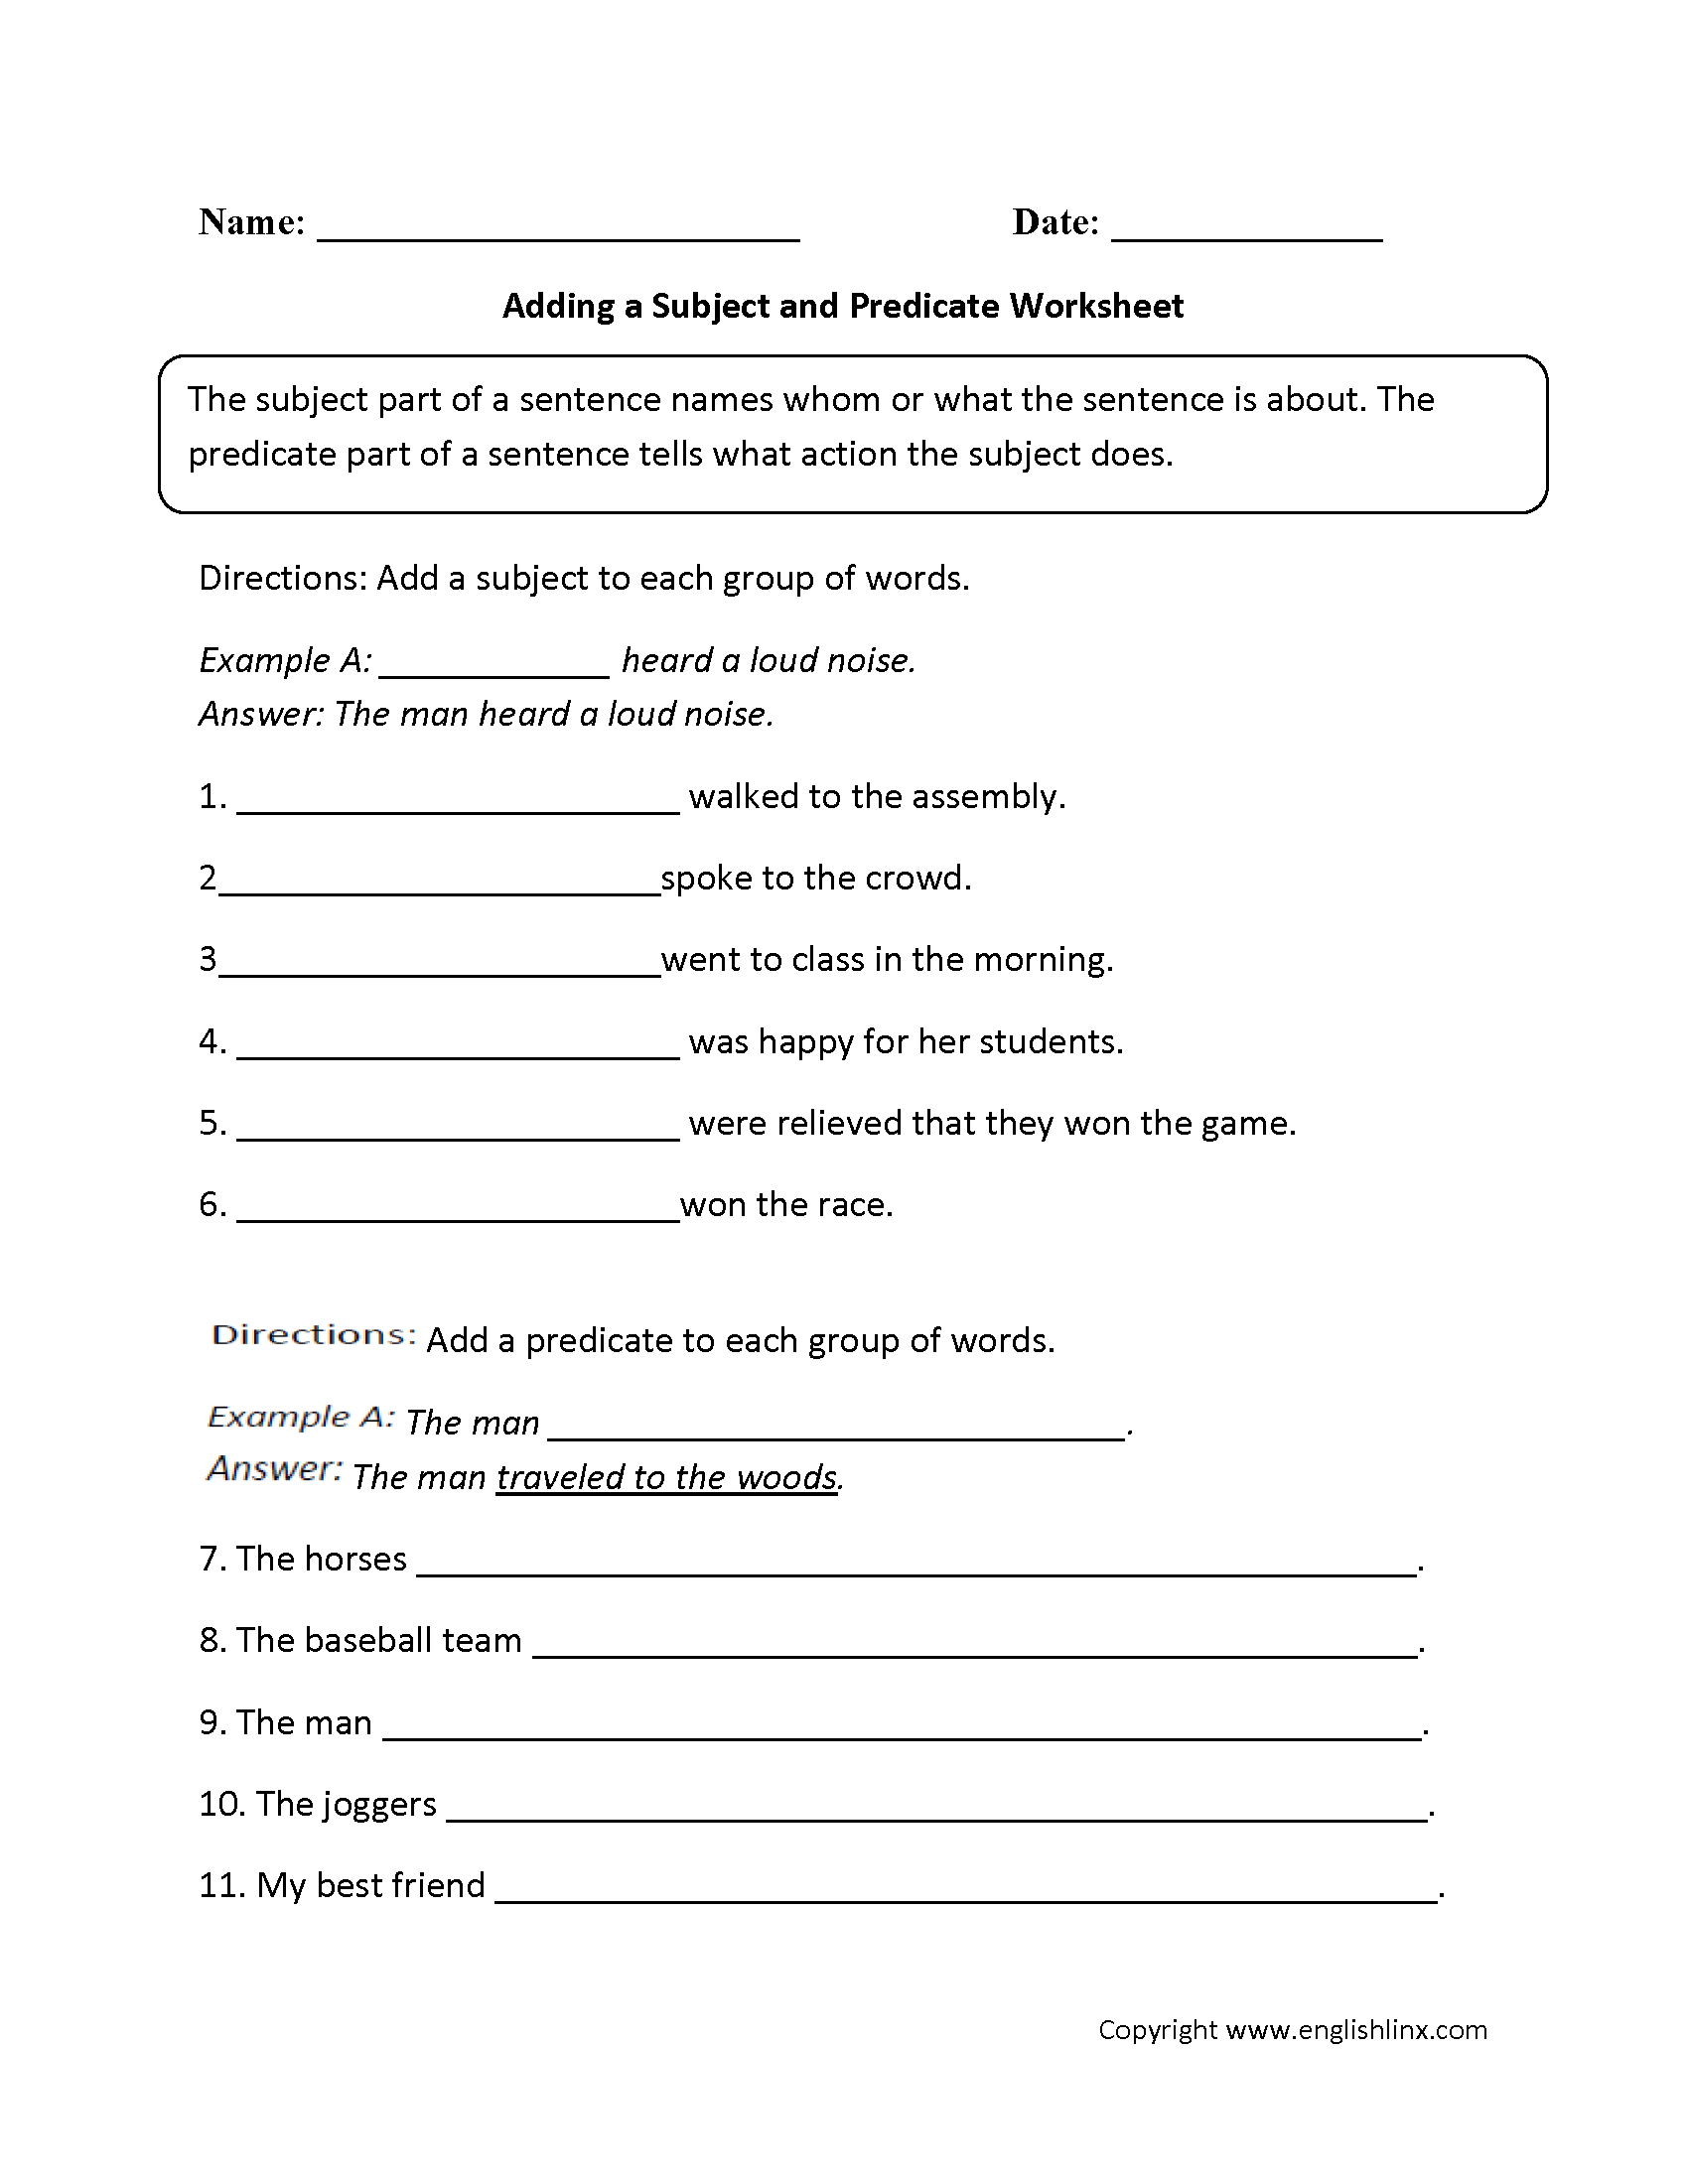 Adding A Subject And Predicate Worksheet | Englishlinx Board - Free Printable Subject Predicate Worksheets 2Nd Grade